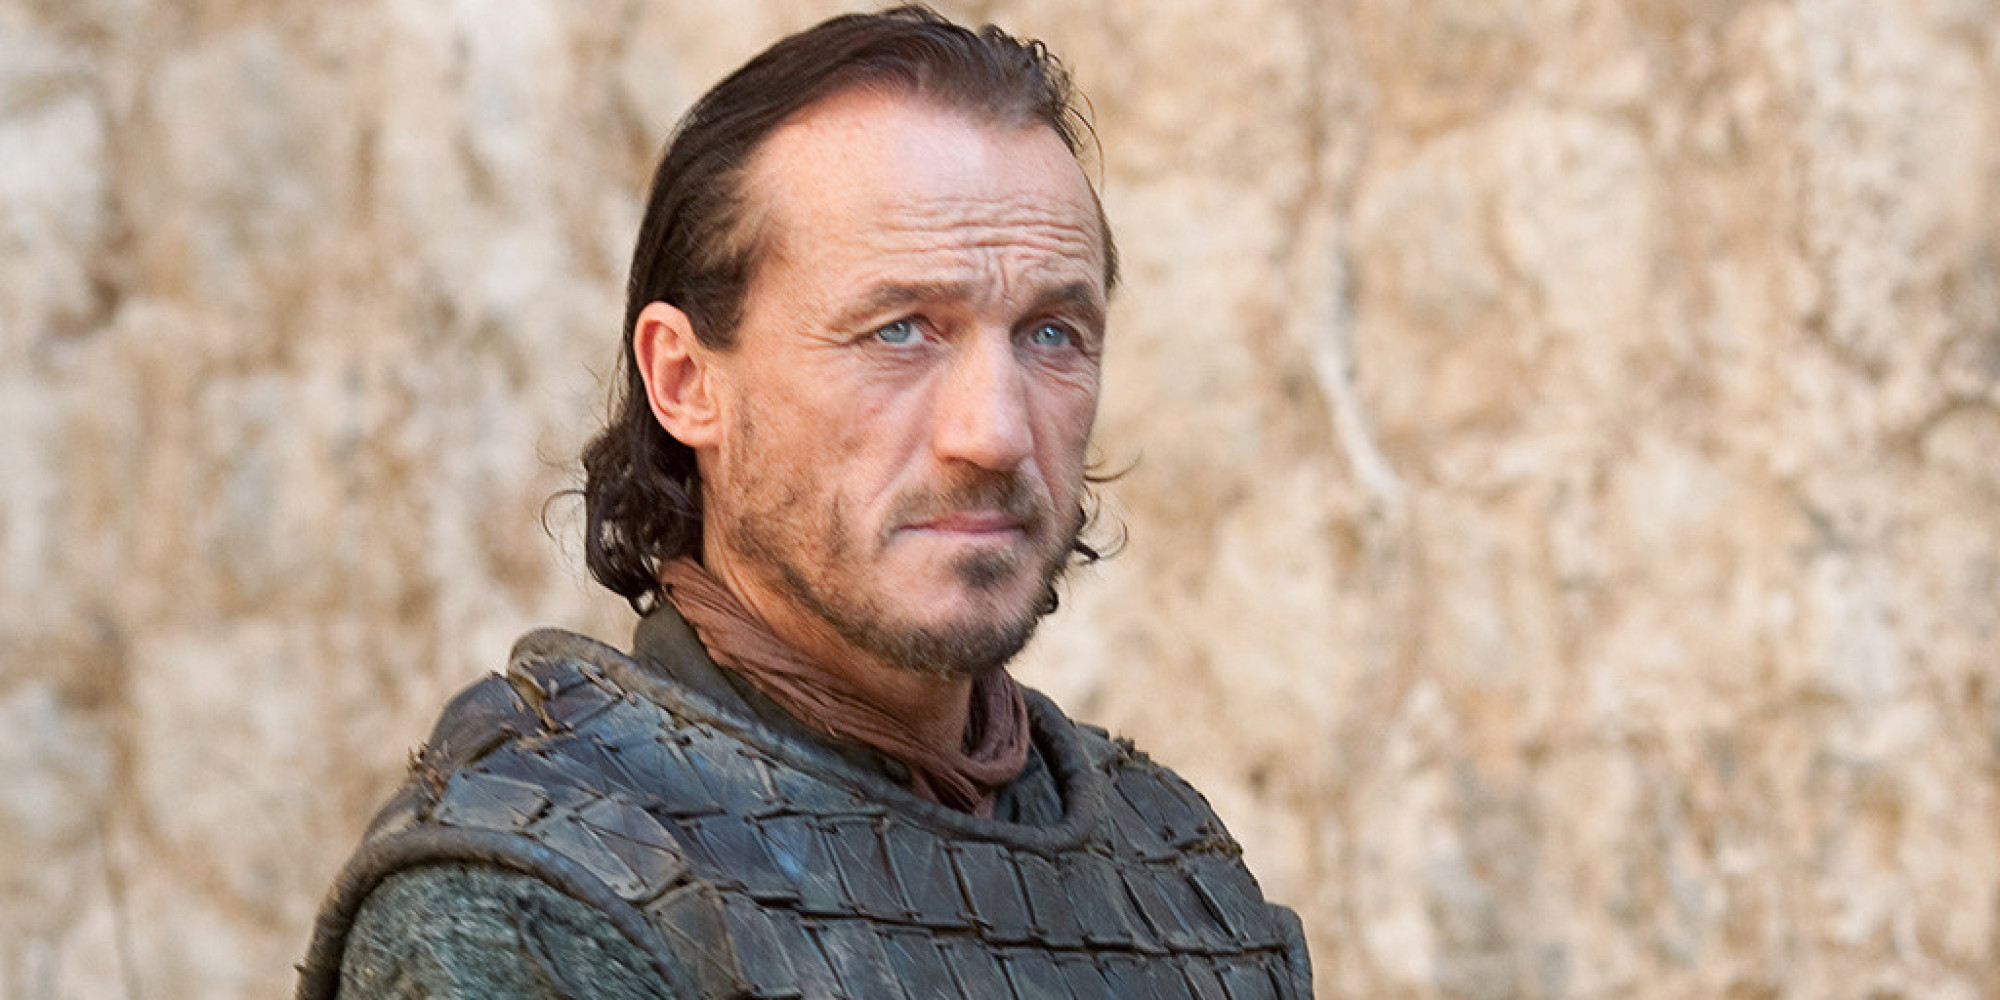 hottest game of thrones men bronn